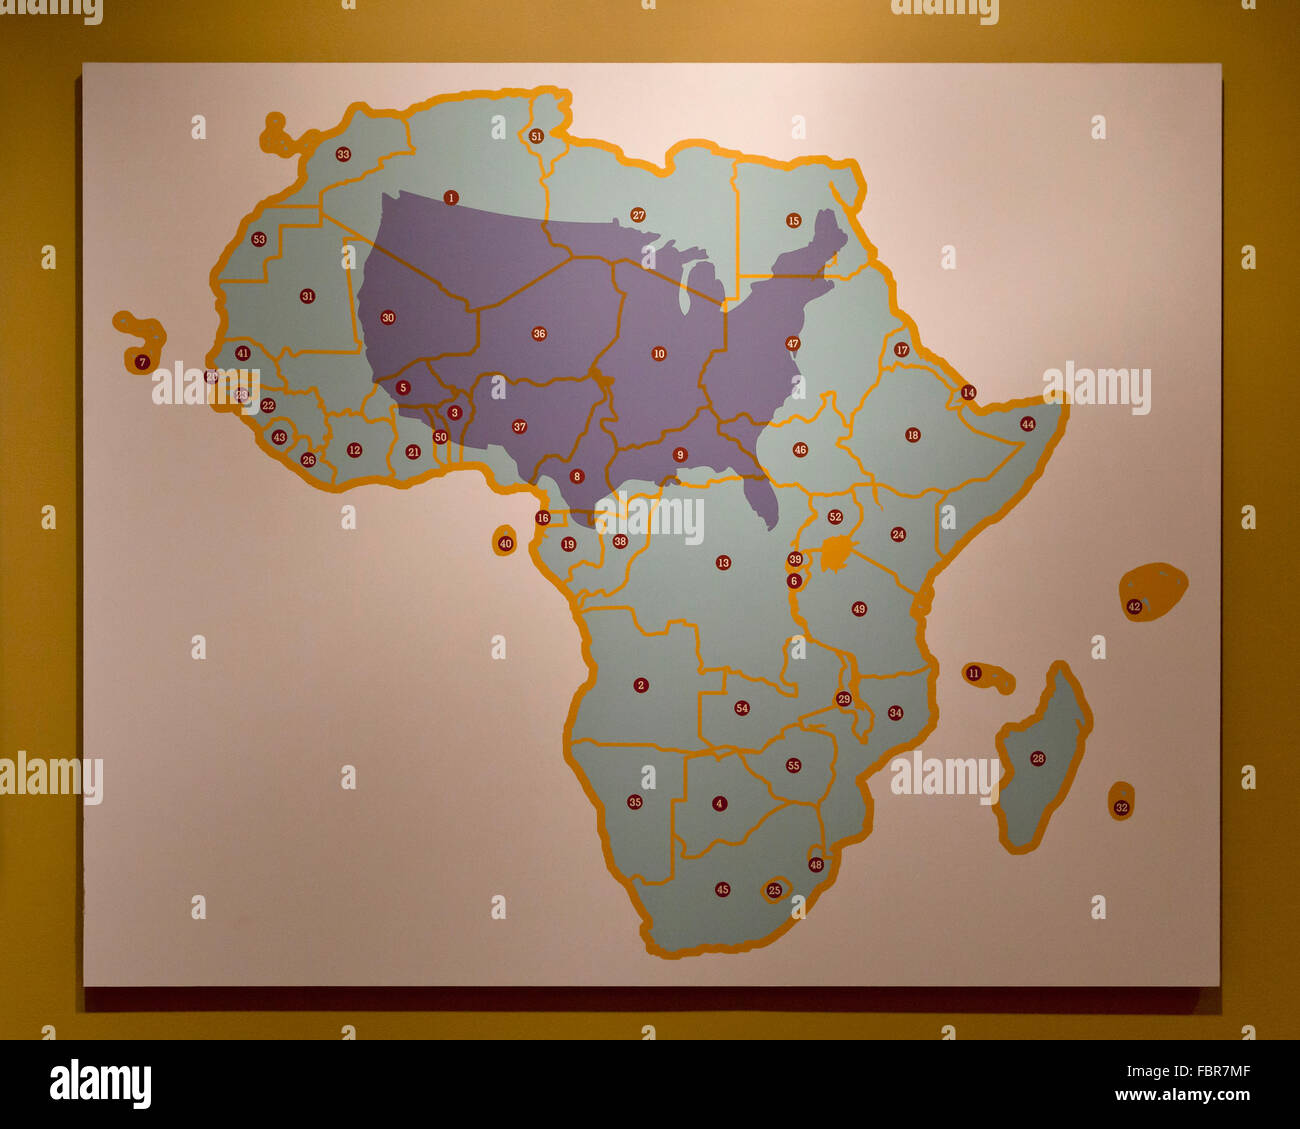 Us and africa true size comparison map stock photo 93324015 alamy us and africa true size comparison map gumiabroncs Images